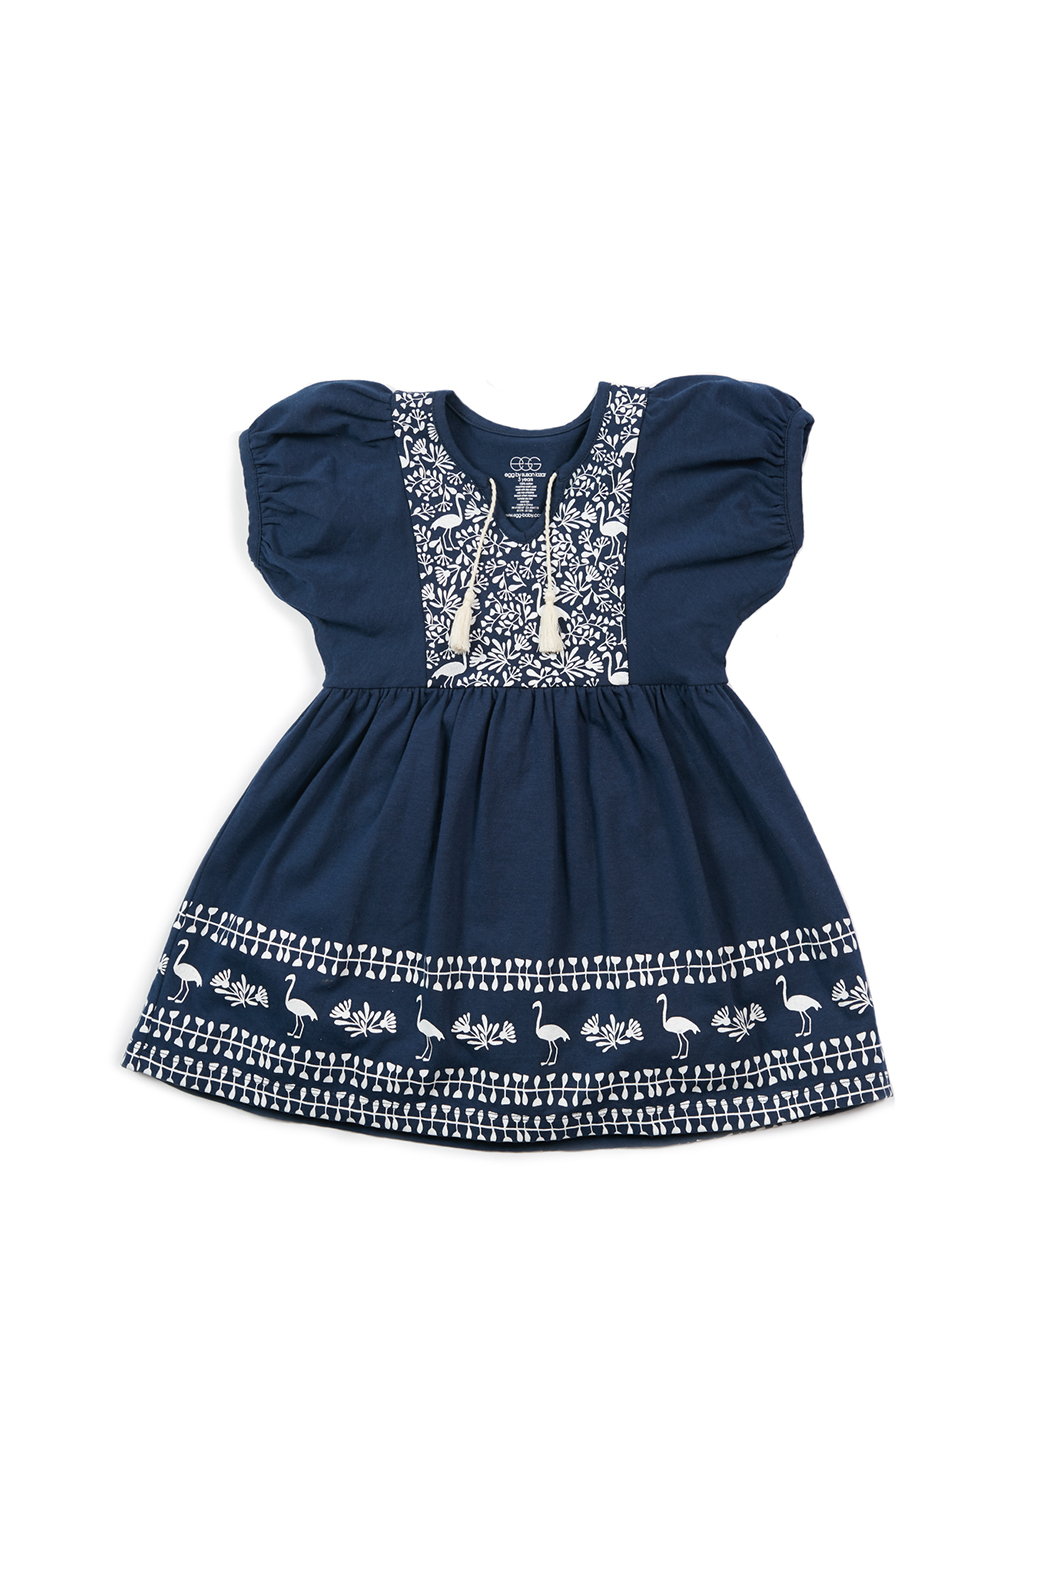 EGG Bridget Dress Navy - Main Image